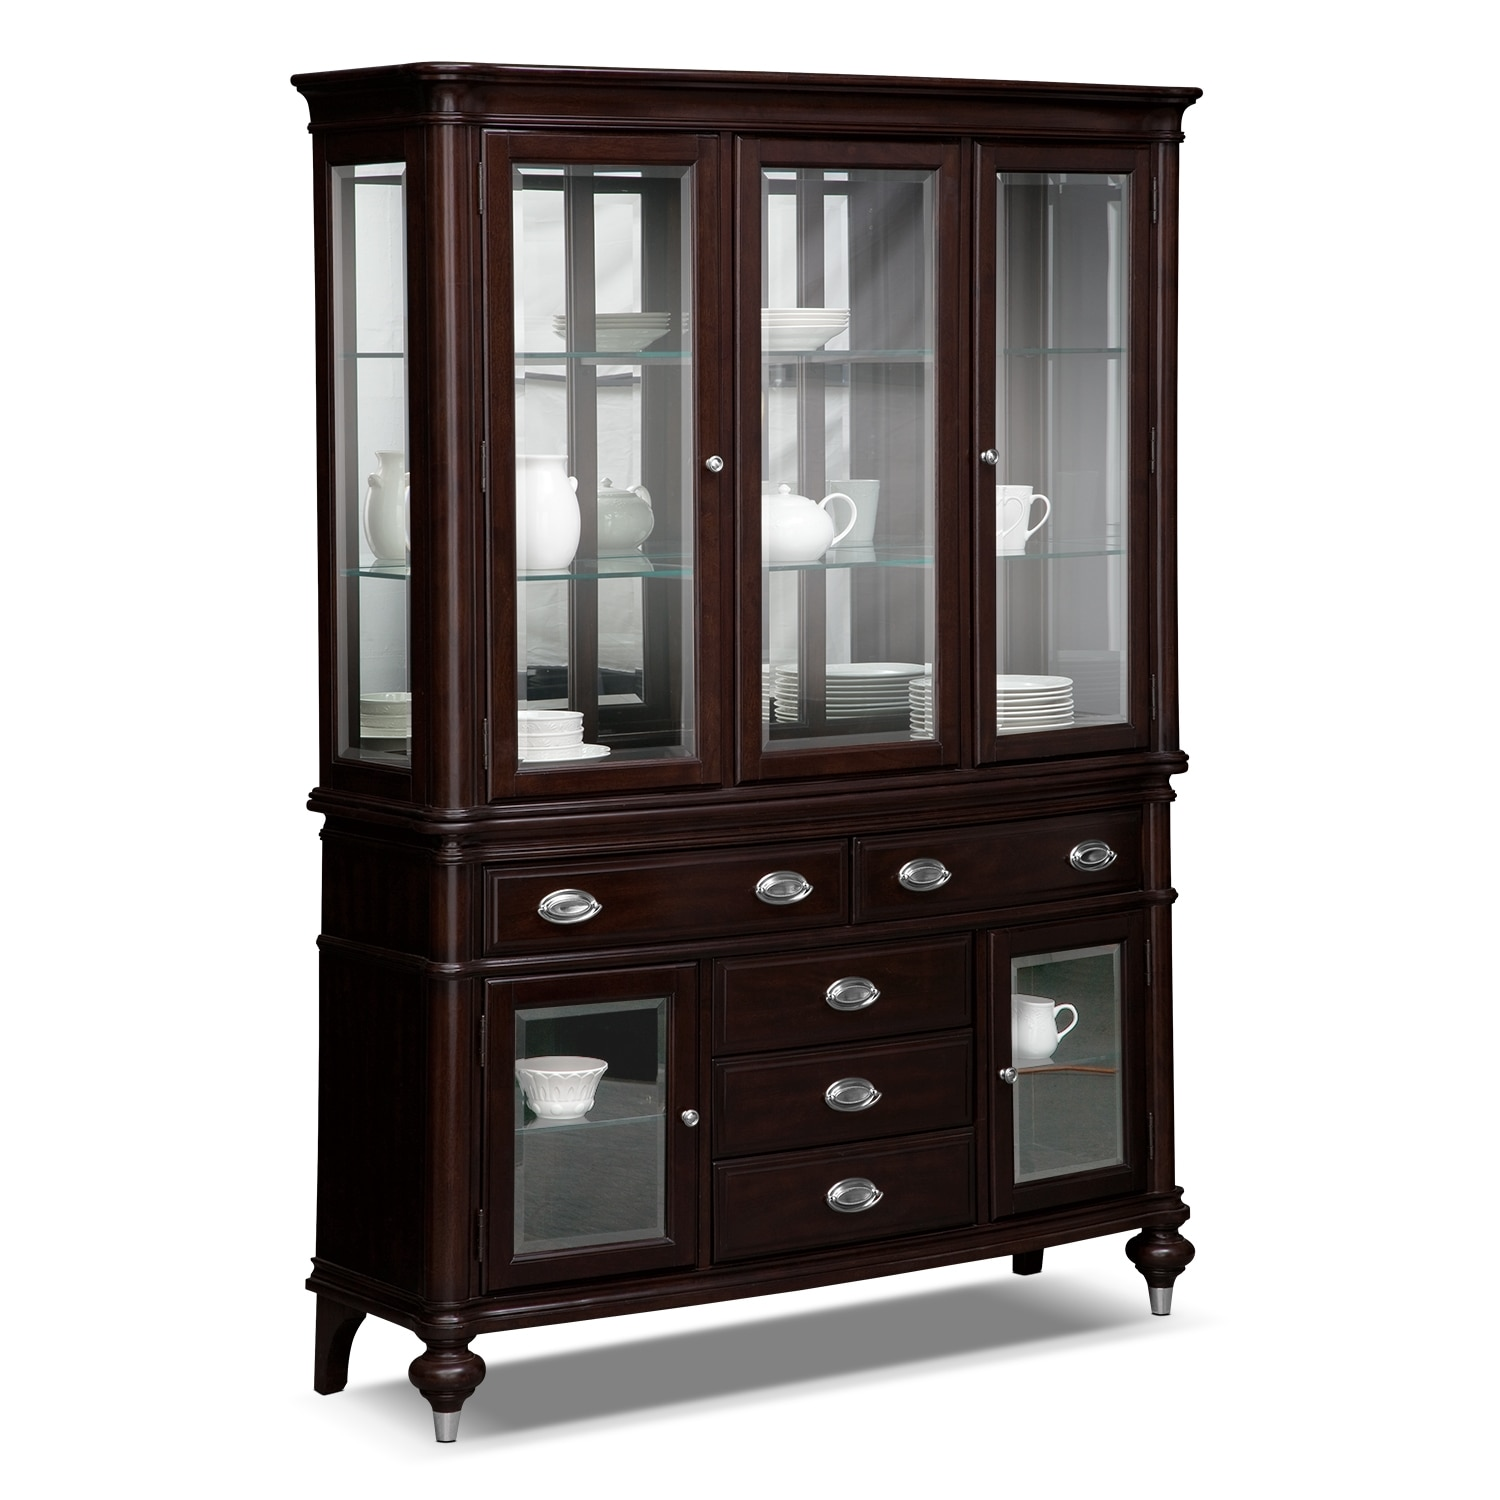 Esquire dining room buffet and hutch value city furniture for Dining room buffet